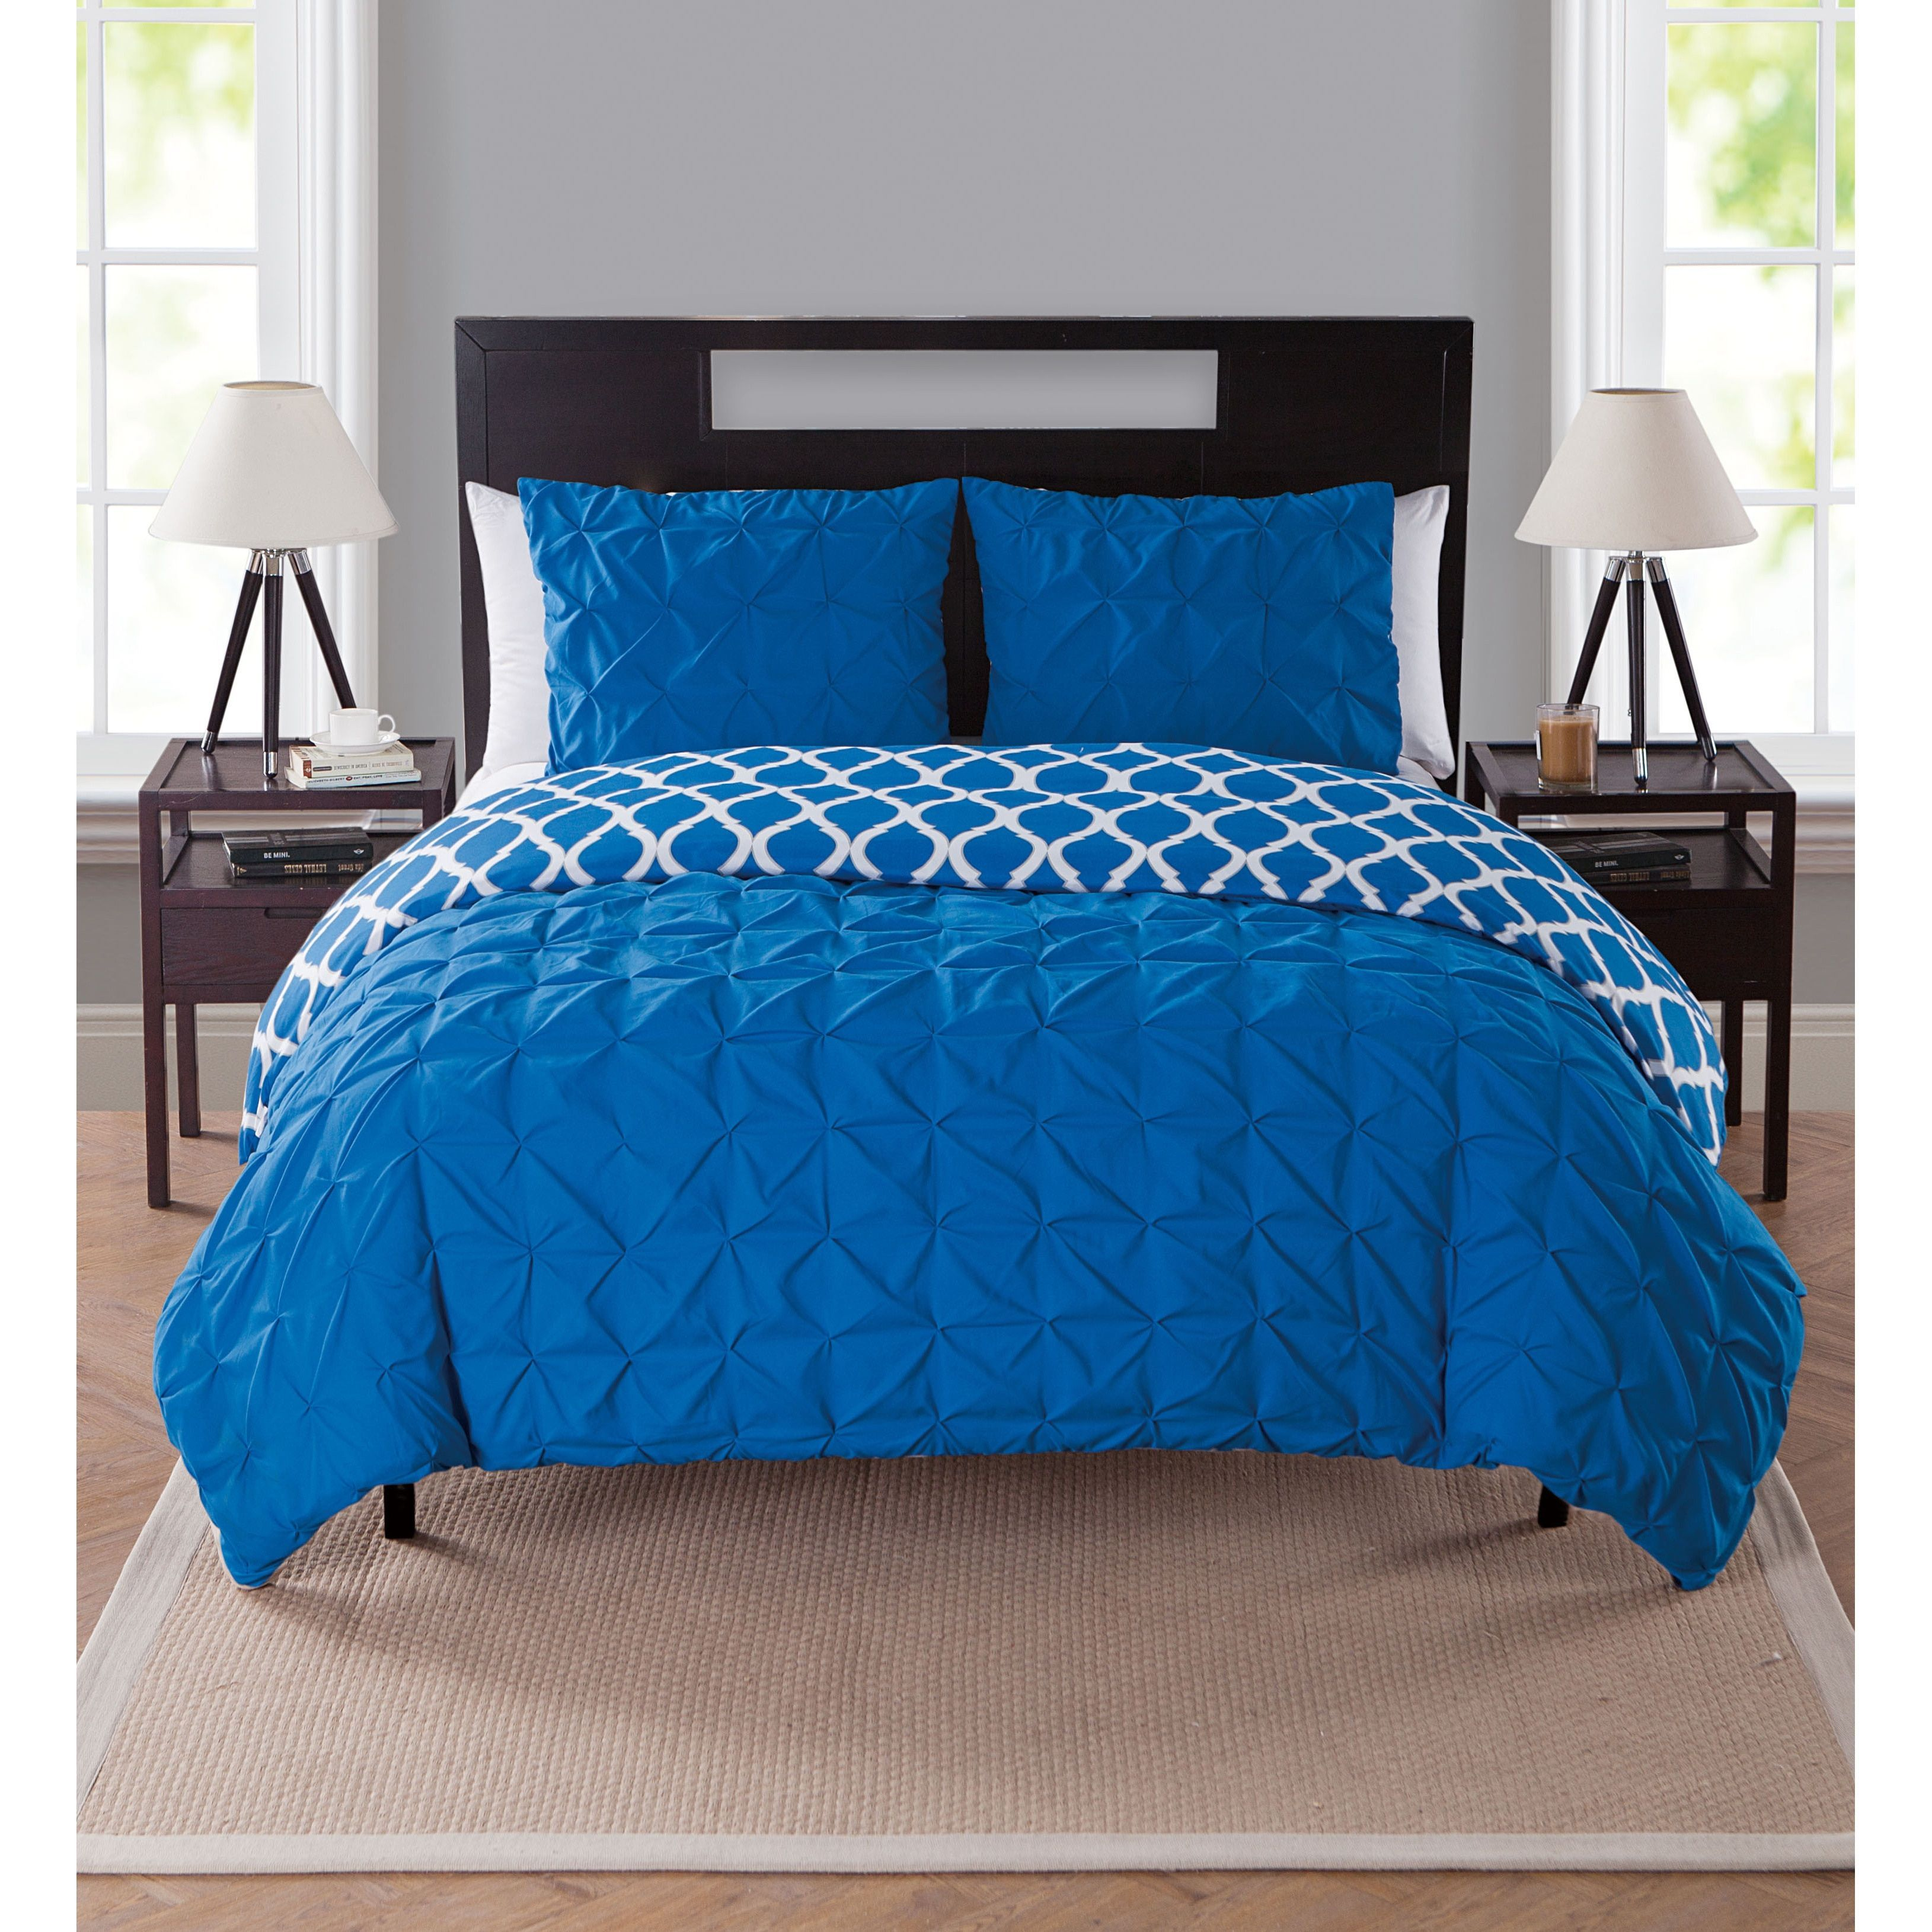 Overstock Com Online Shopping Bedding Furniture Electronics Jewelry Clothing More In 2020 Duvet Bedding Bedding Master Bedroom Bed Duvet Covers